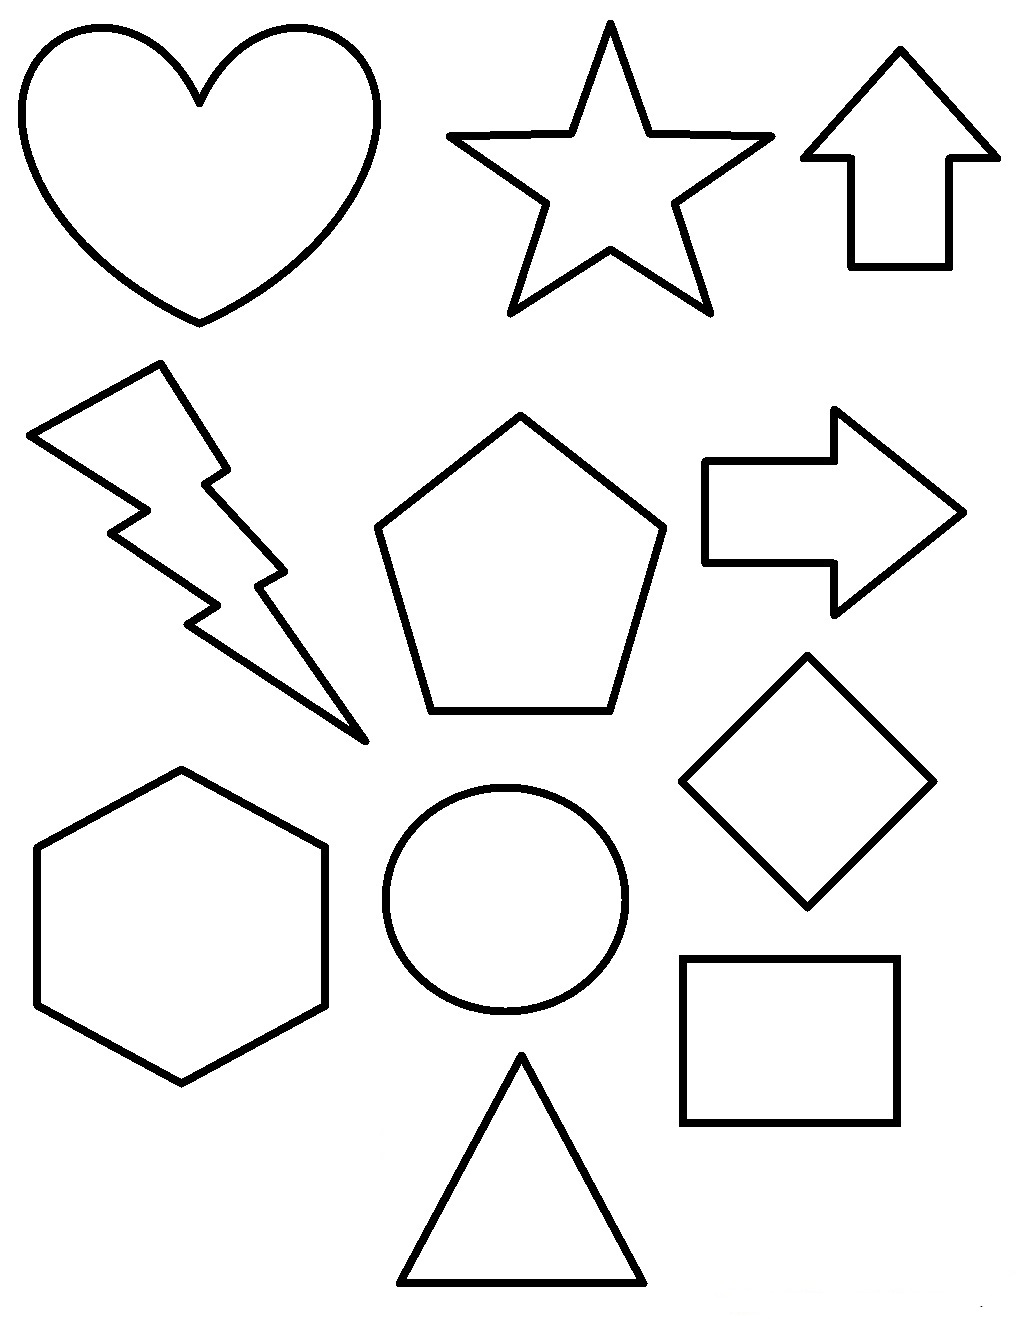 coloring pages with shapes shapes coloring pages printable the neighborhood moms pages with coloring shapes